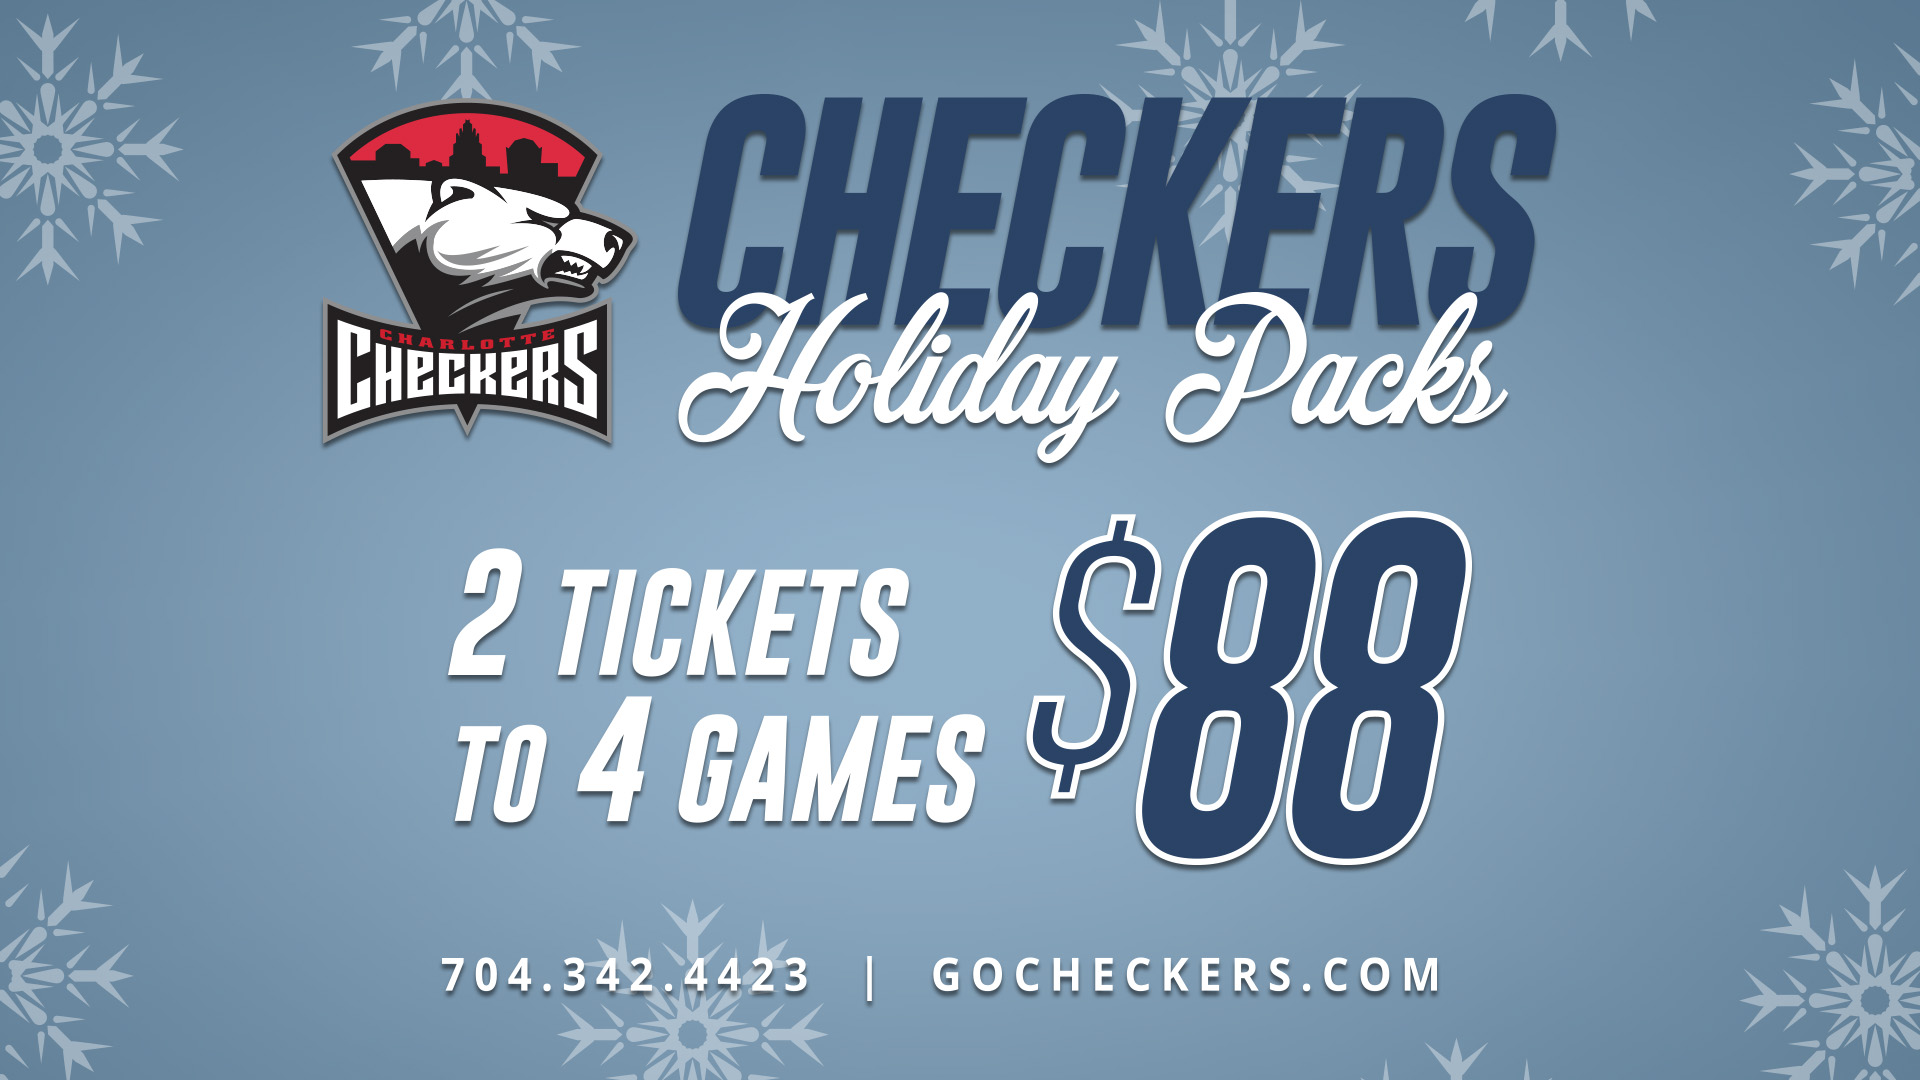 Charlotte Checkers holiday packs